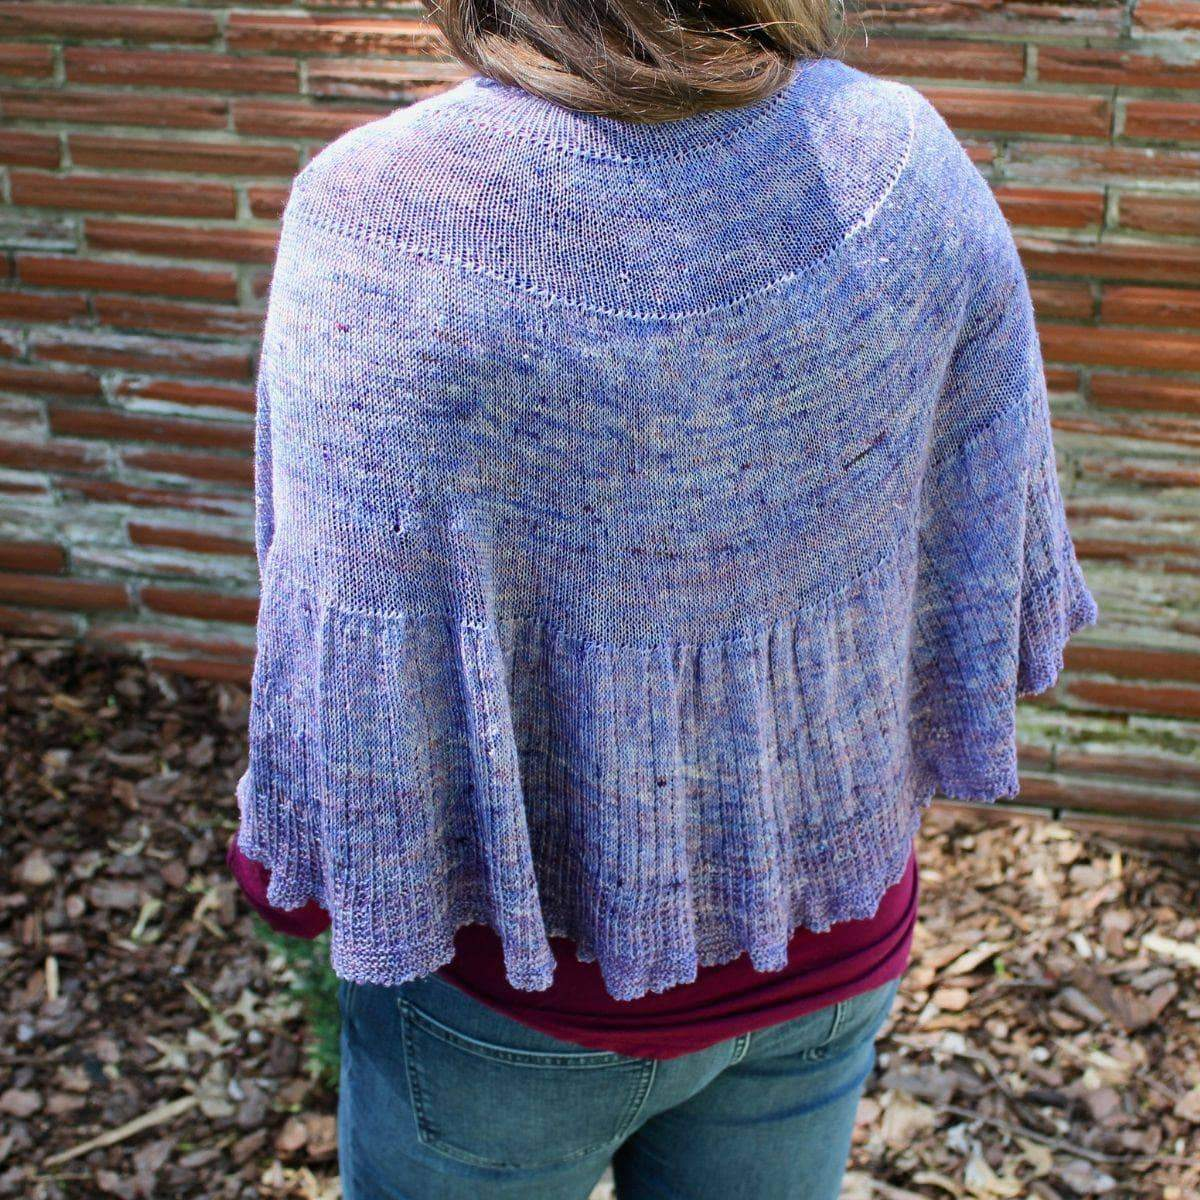 Calico Scallop Shawl Knitting Kit-Darn Good Yarn-superbulky